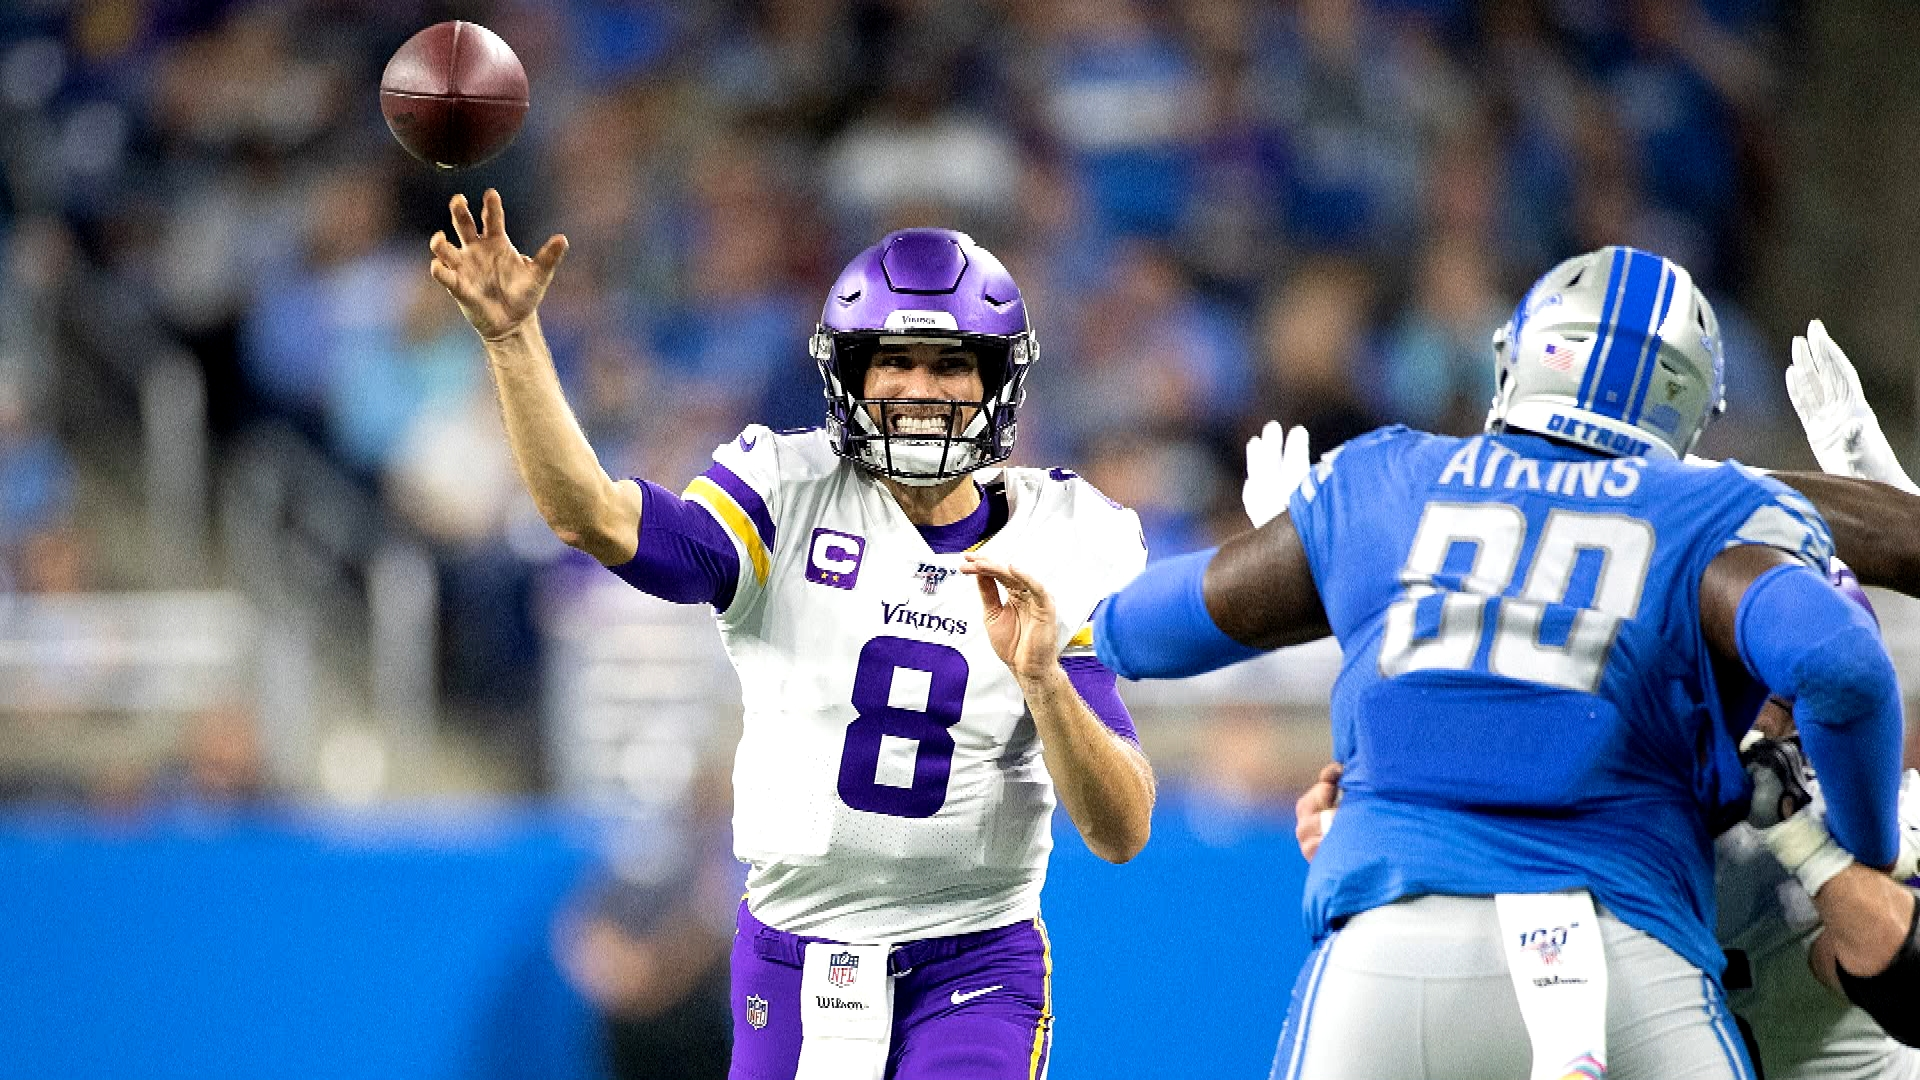 Vikings' get statement win vs. Lions after career day from Kirk